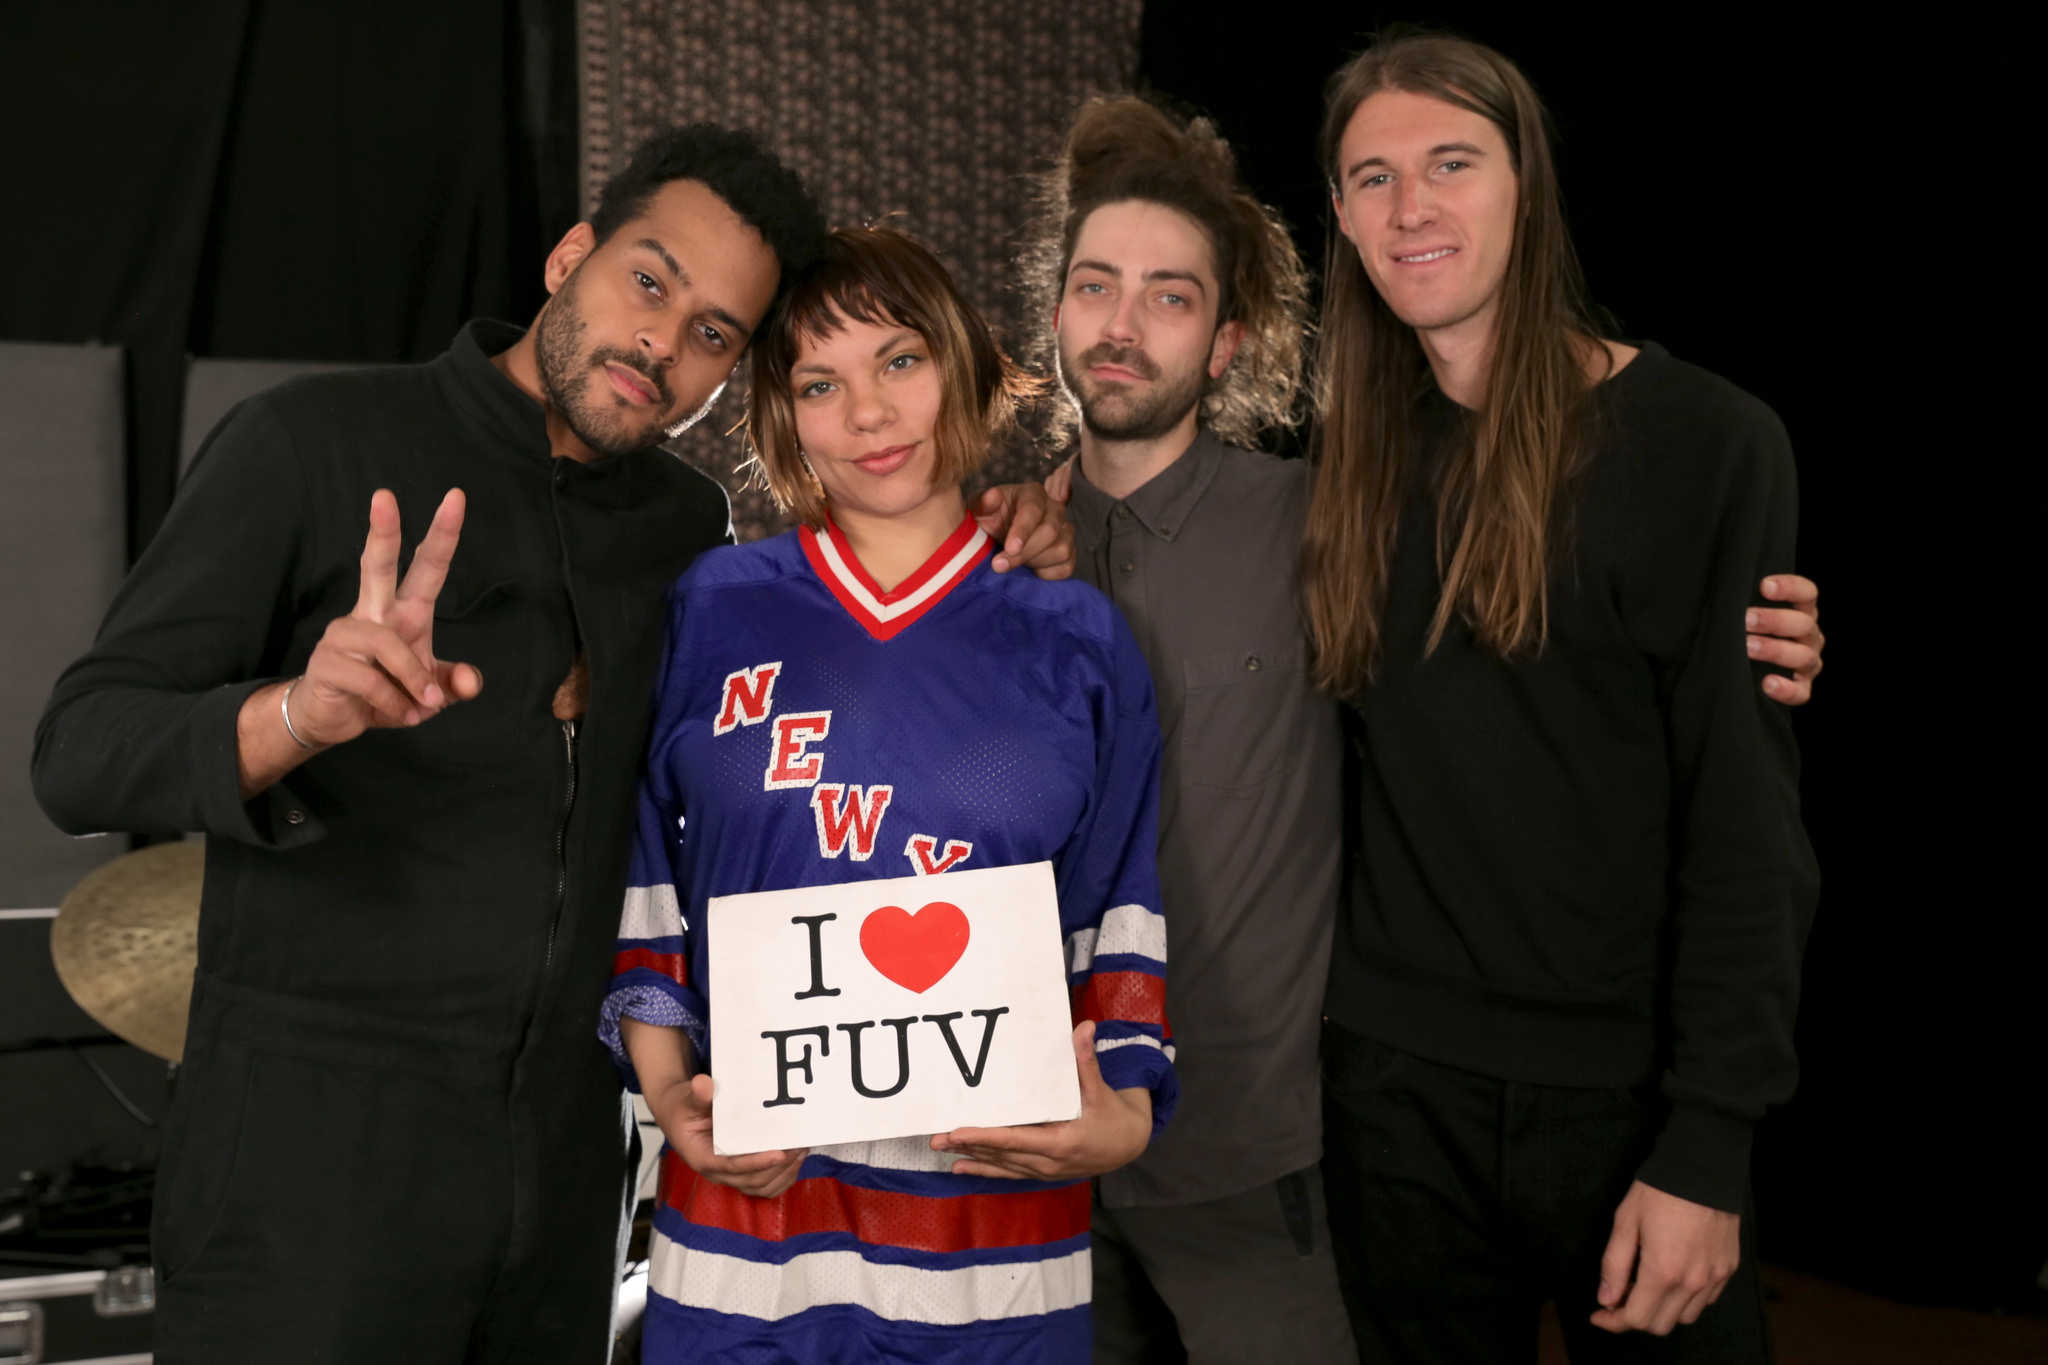 Hear an FUV Live session with Twin Shadow tonight at 9.